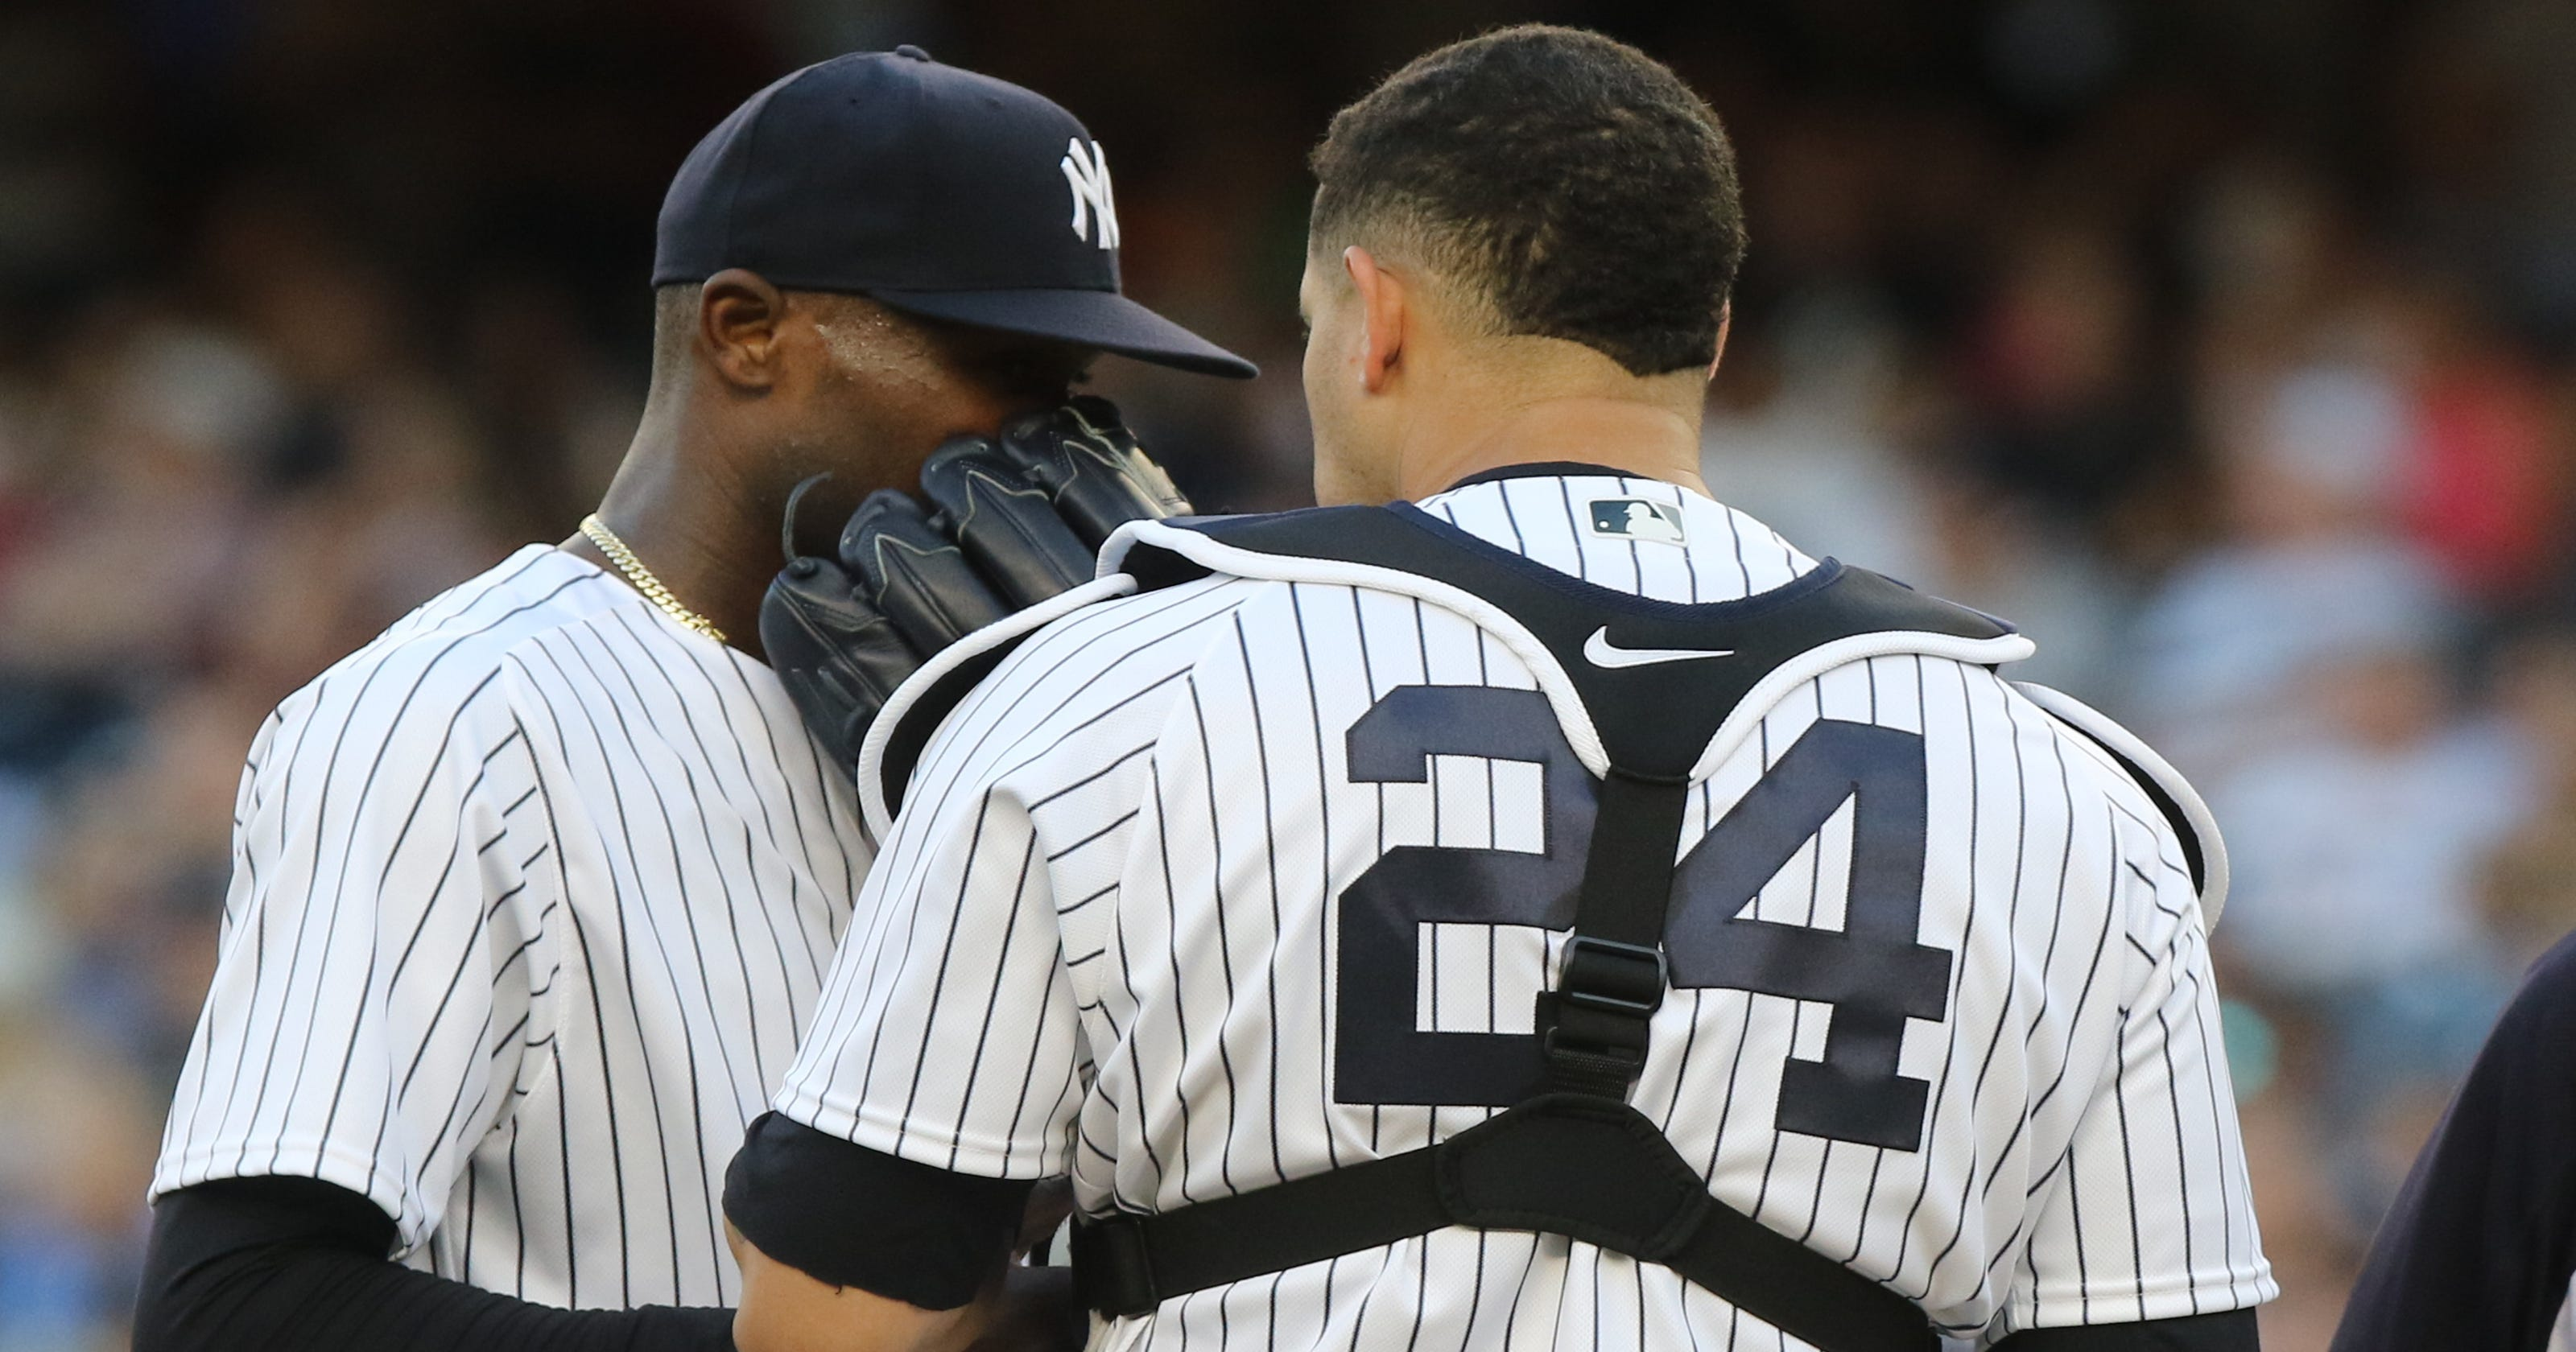 100% authentic d55fc 3e401 Domingo German exposes NY Yankees' rotation needs in 7-5 ...